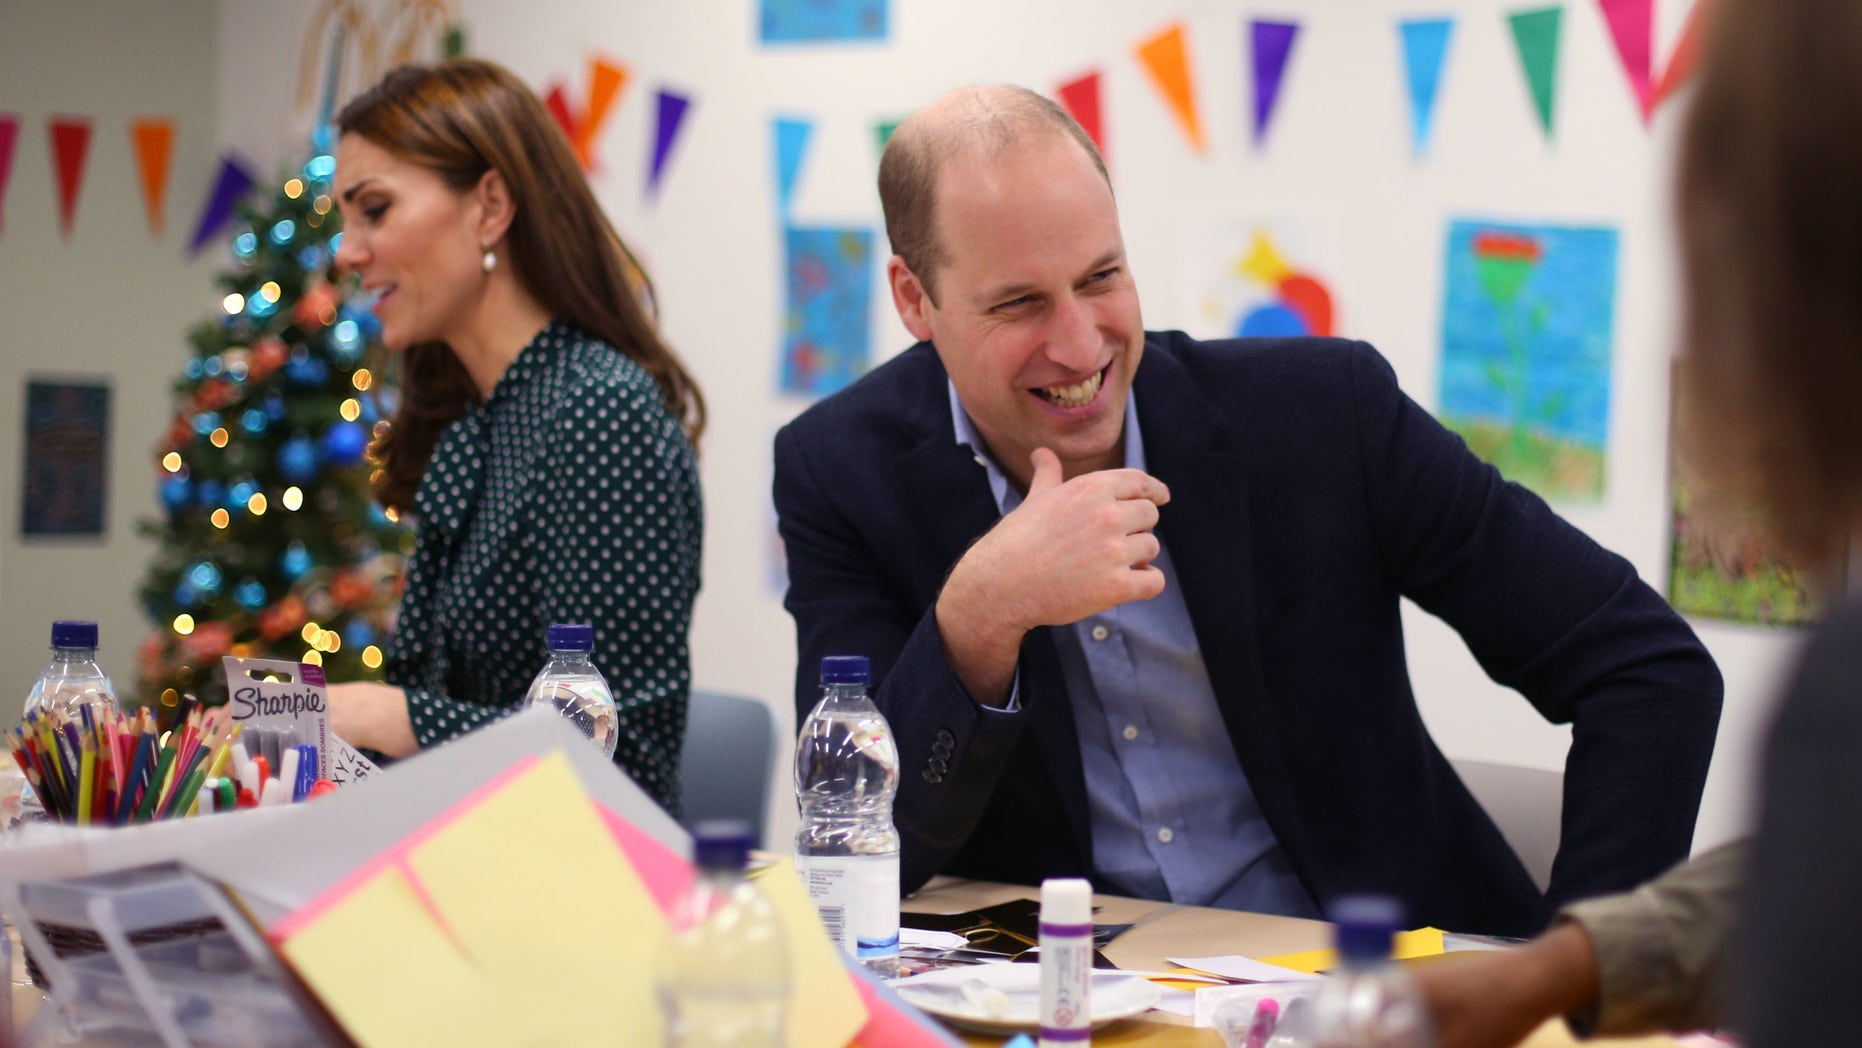 Catherine, Duchess of Cambridge and Prince William, Duke of Cambridge hang piece in an arts and craft session with shoppers at some stage in their consult with to the homeless charity The Passage on December eleven, 2018 in London, England.